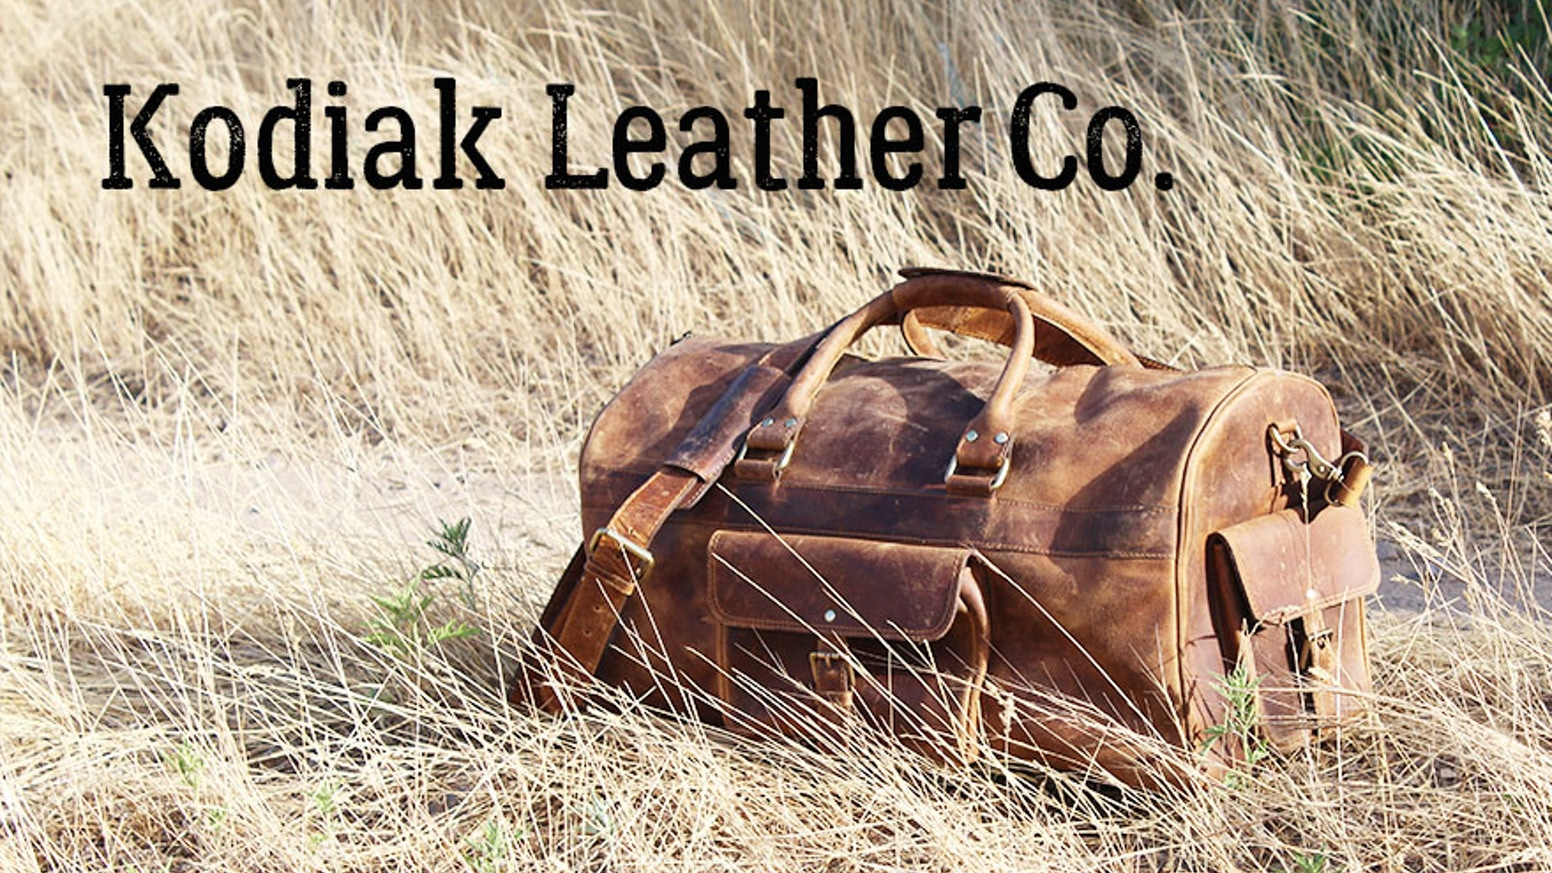 A premium quality leather duffel bag that is classic, functional and built to last a lifetime.